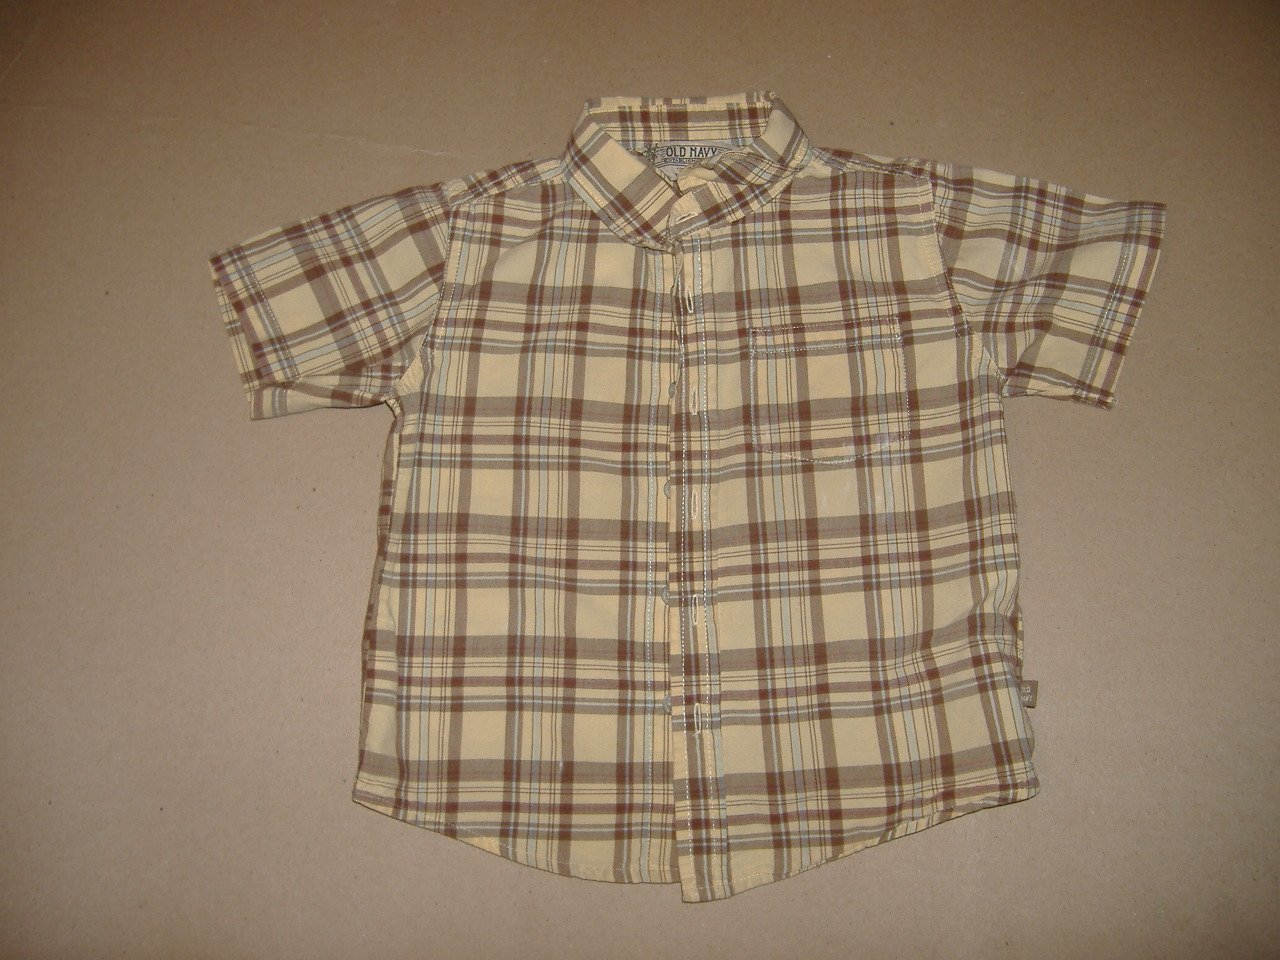 Old Navy Boy's Short Sleeve Shirt   Size 3T